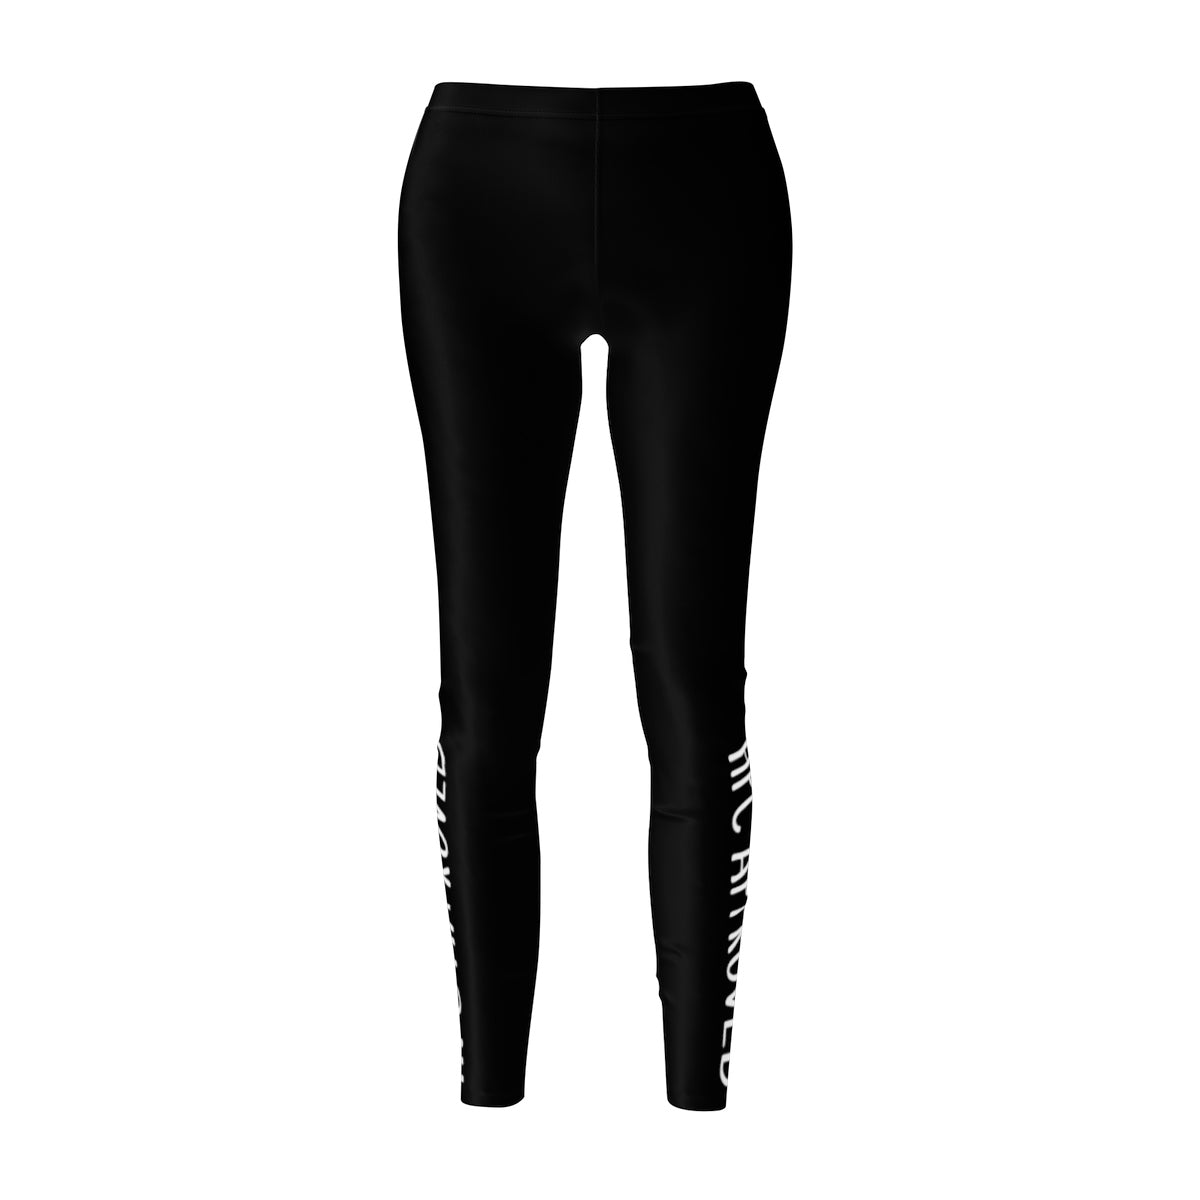 HPC Approved Leggings: Black